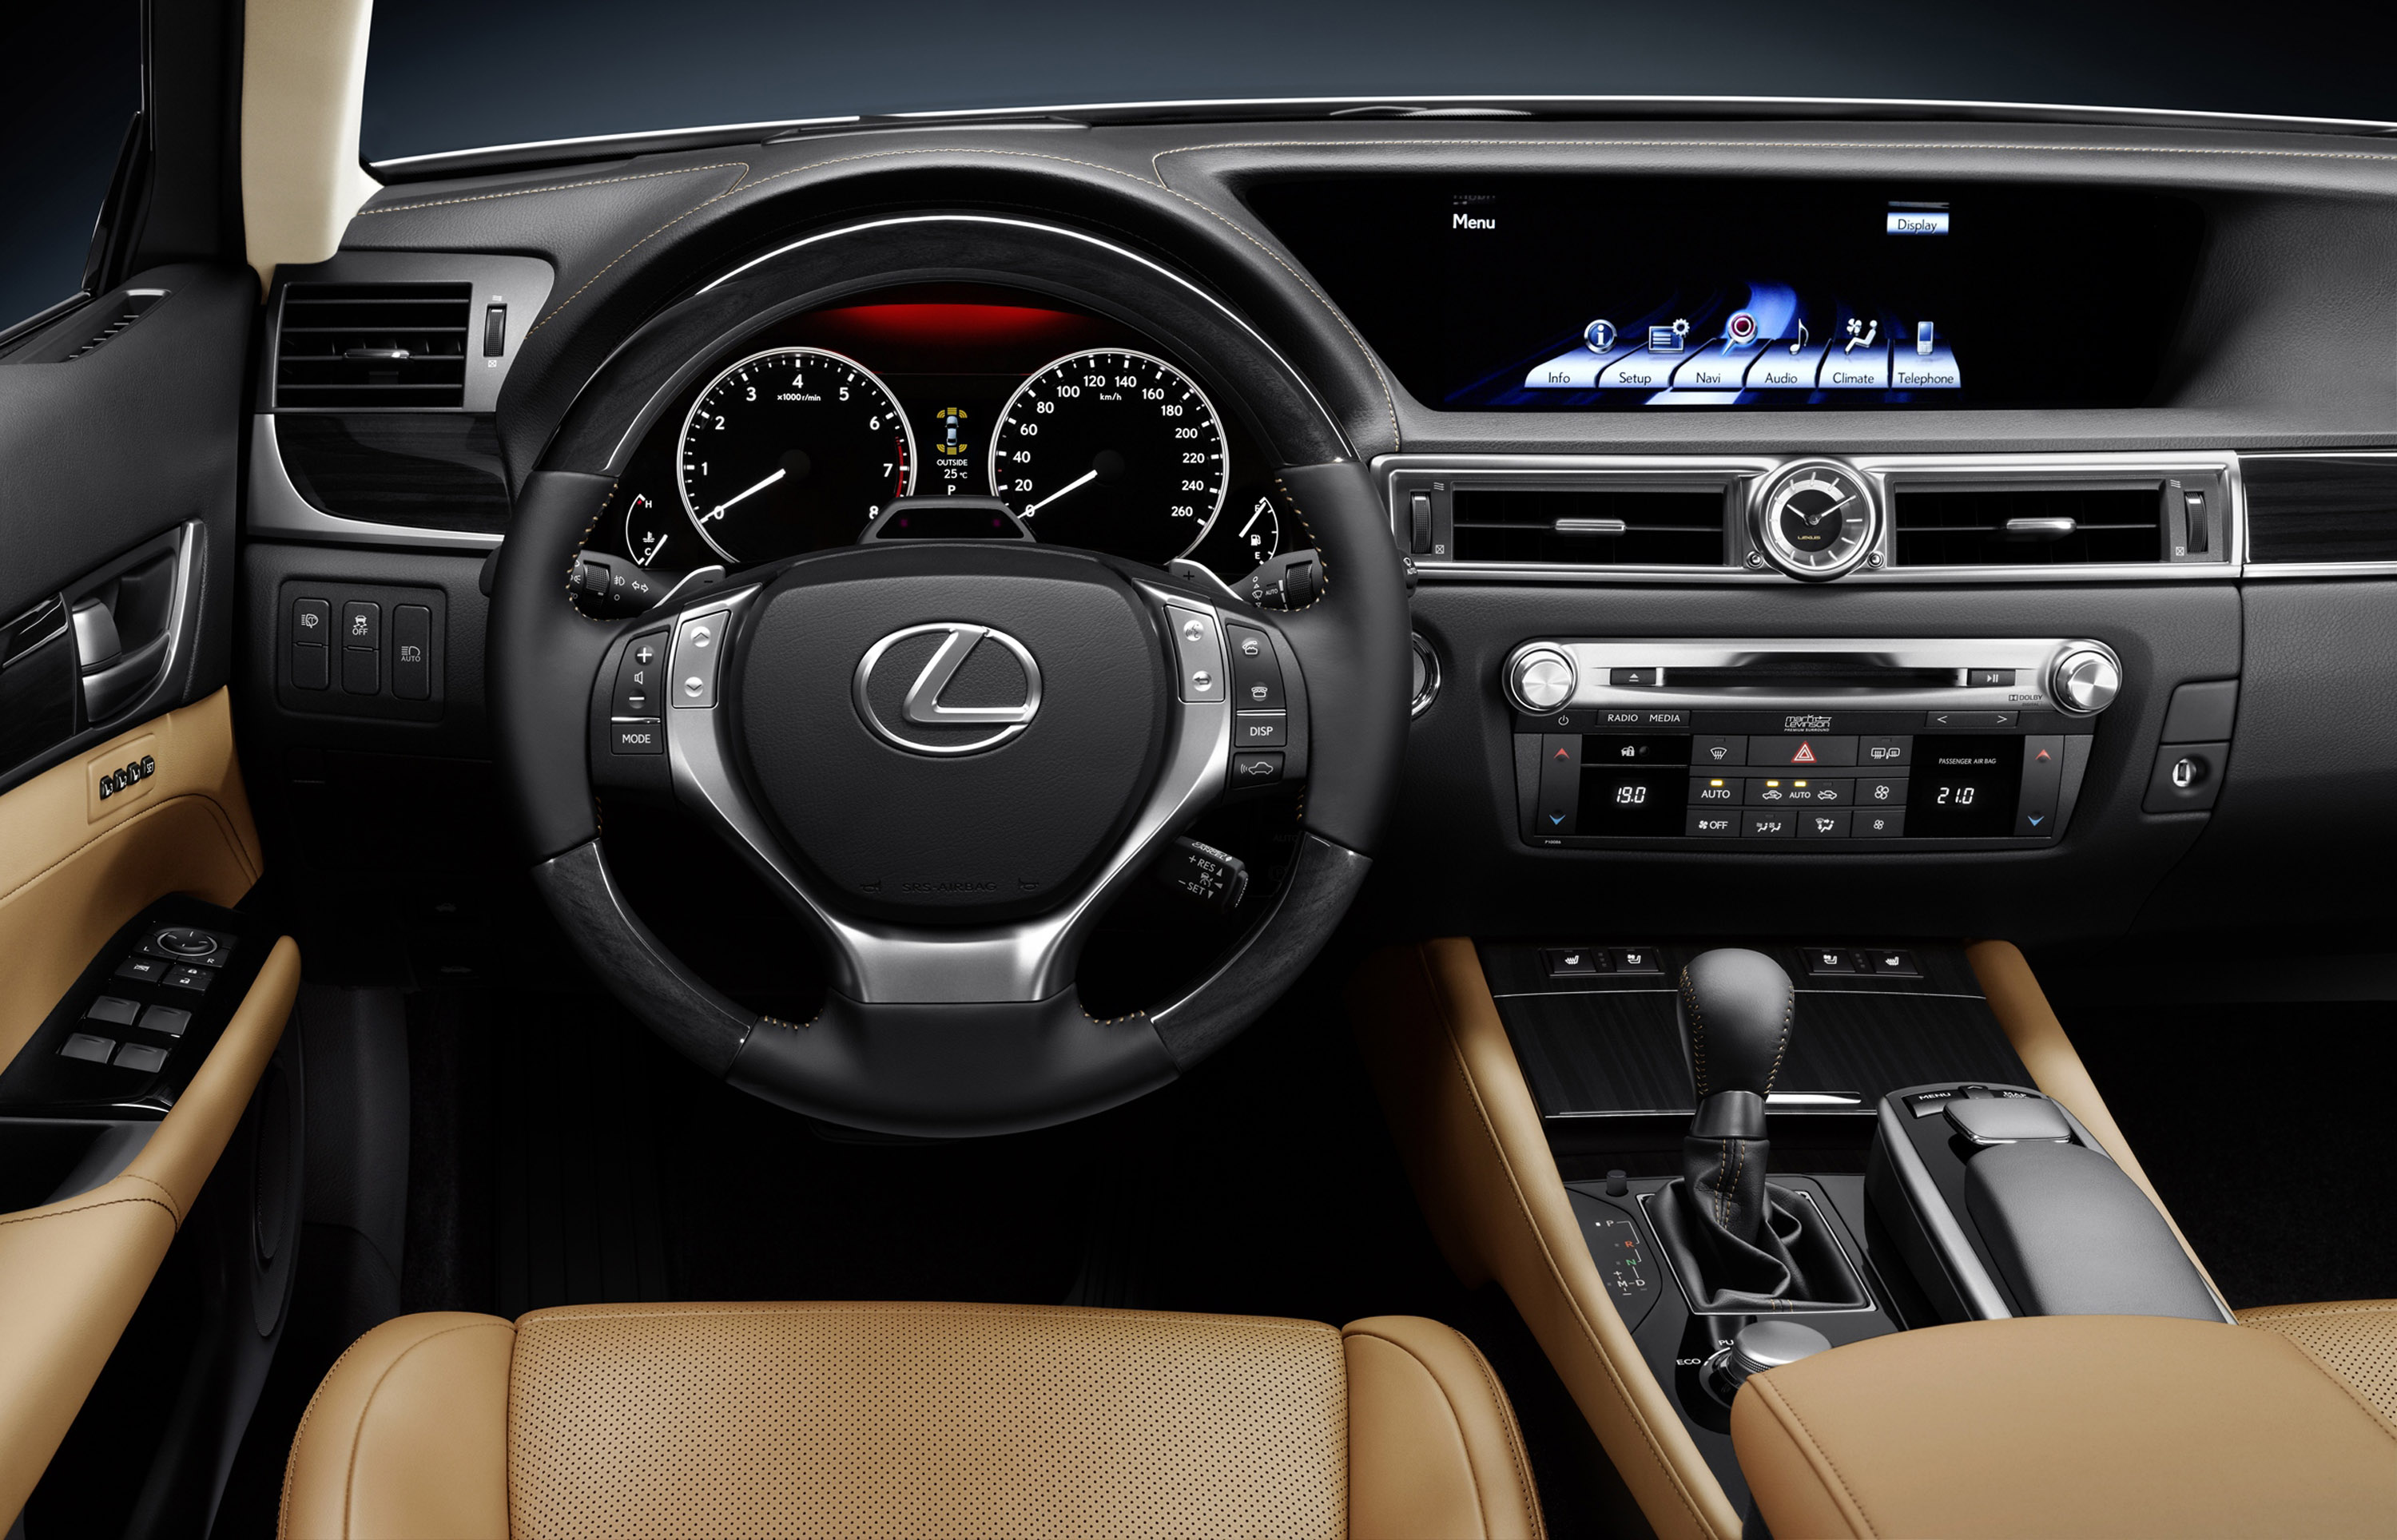 2012 Lexus Gs 450h Full Hybrid Picture 58296